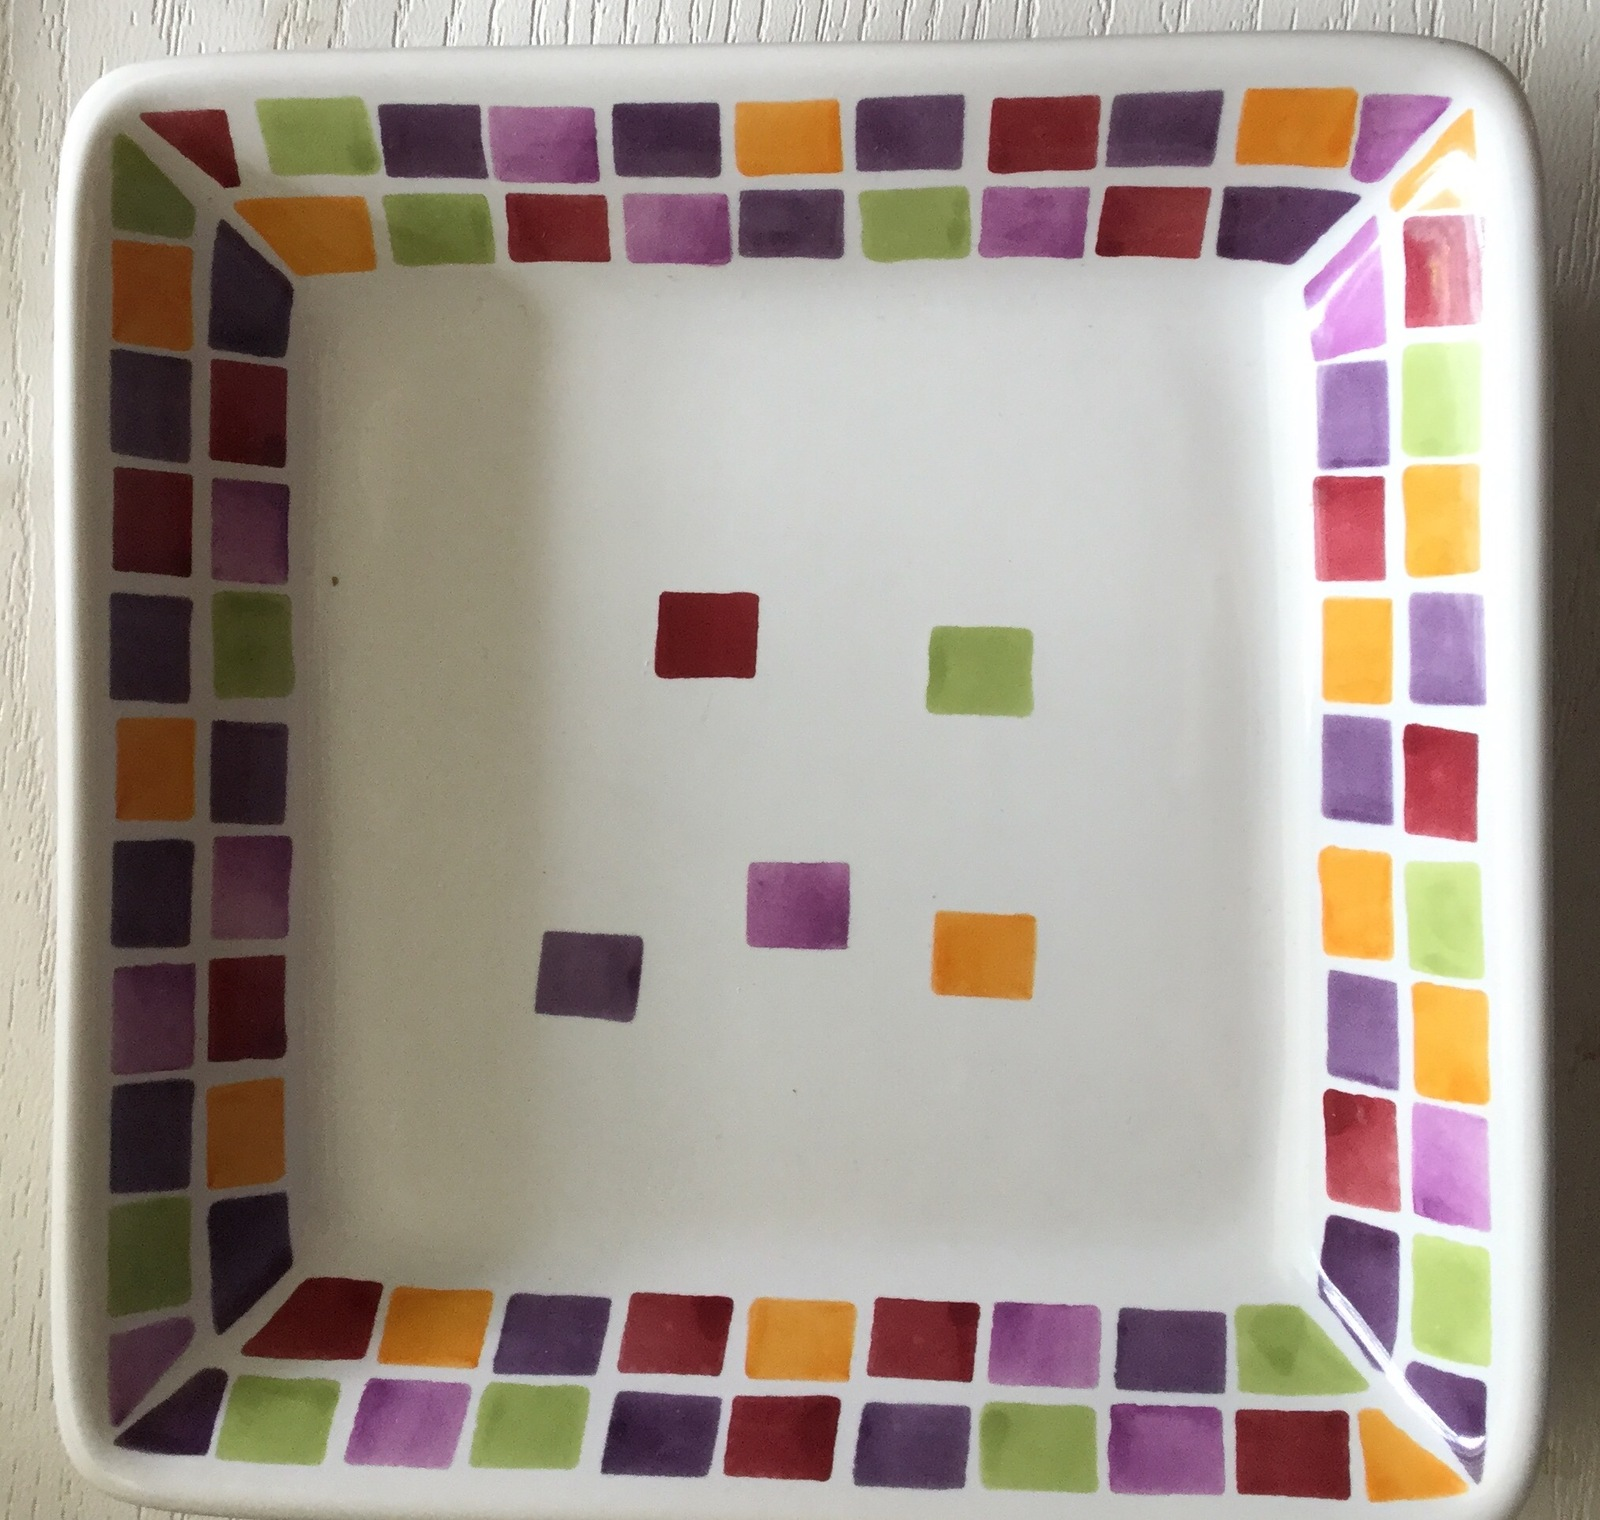 Pampered Chef Simple Additions 2024 Square Tiles 7 Inch Dish